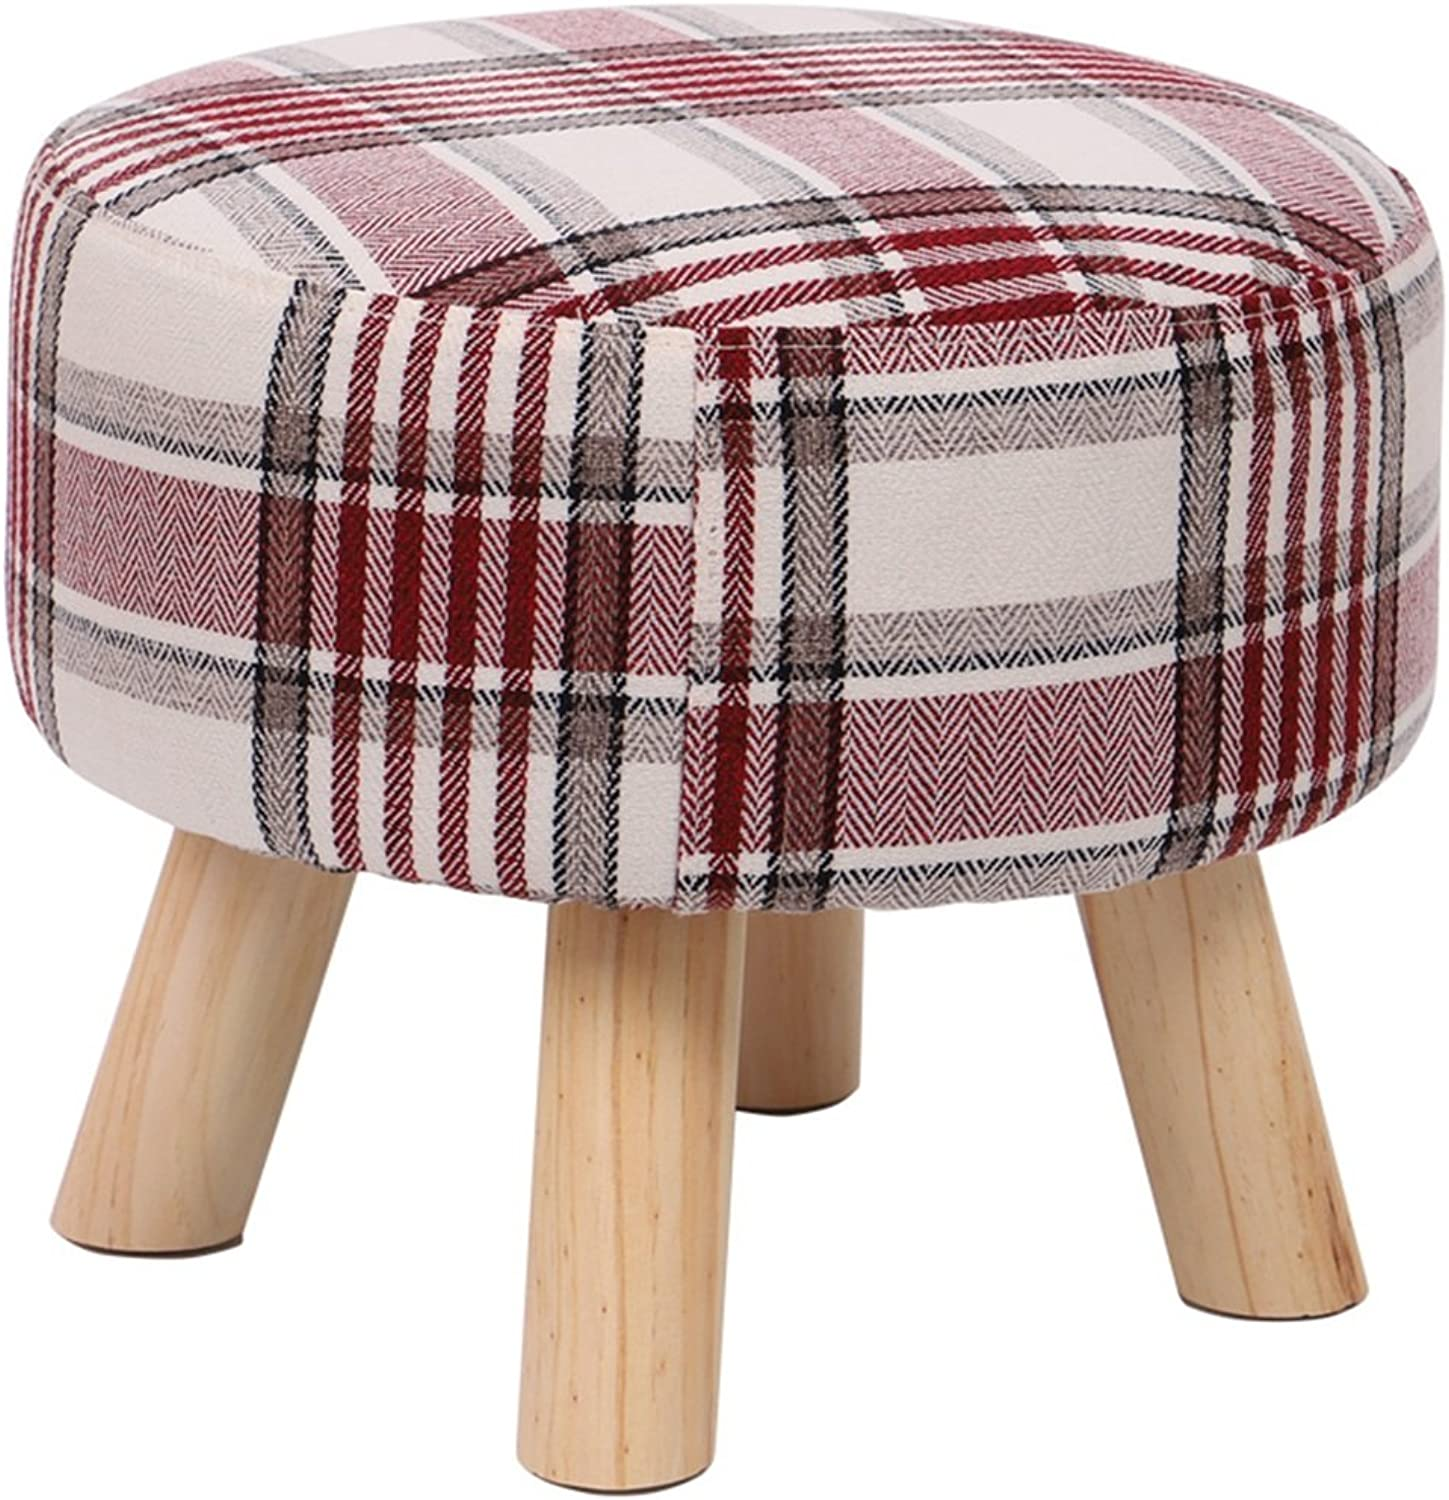 Solid Wood shoes Bench wear shoes Bench Fabric Stool Sofa Bench Coffee Table Stool Home Stool Washable Hallway Furniture